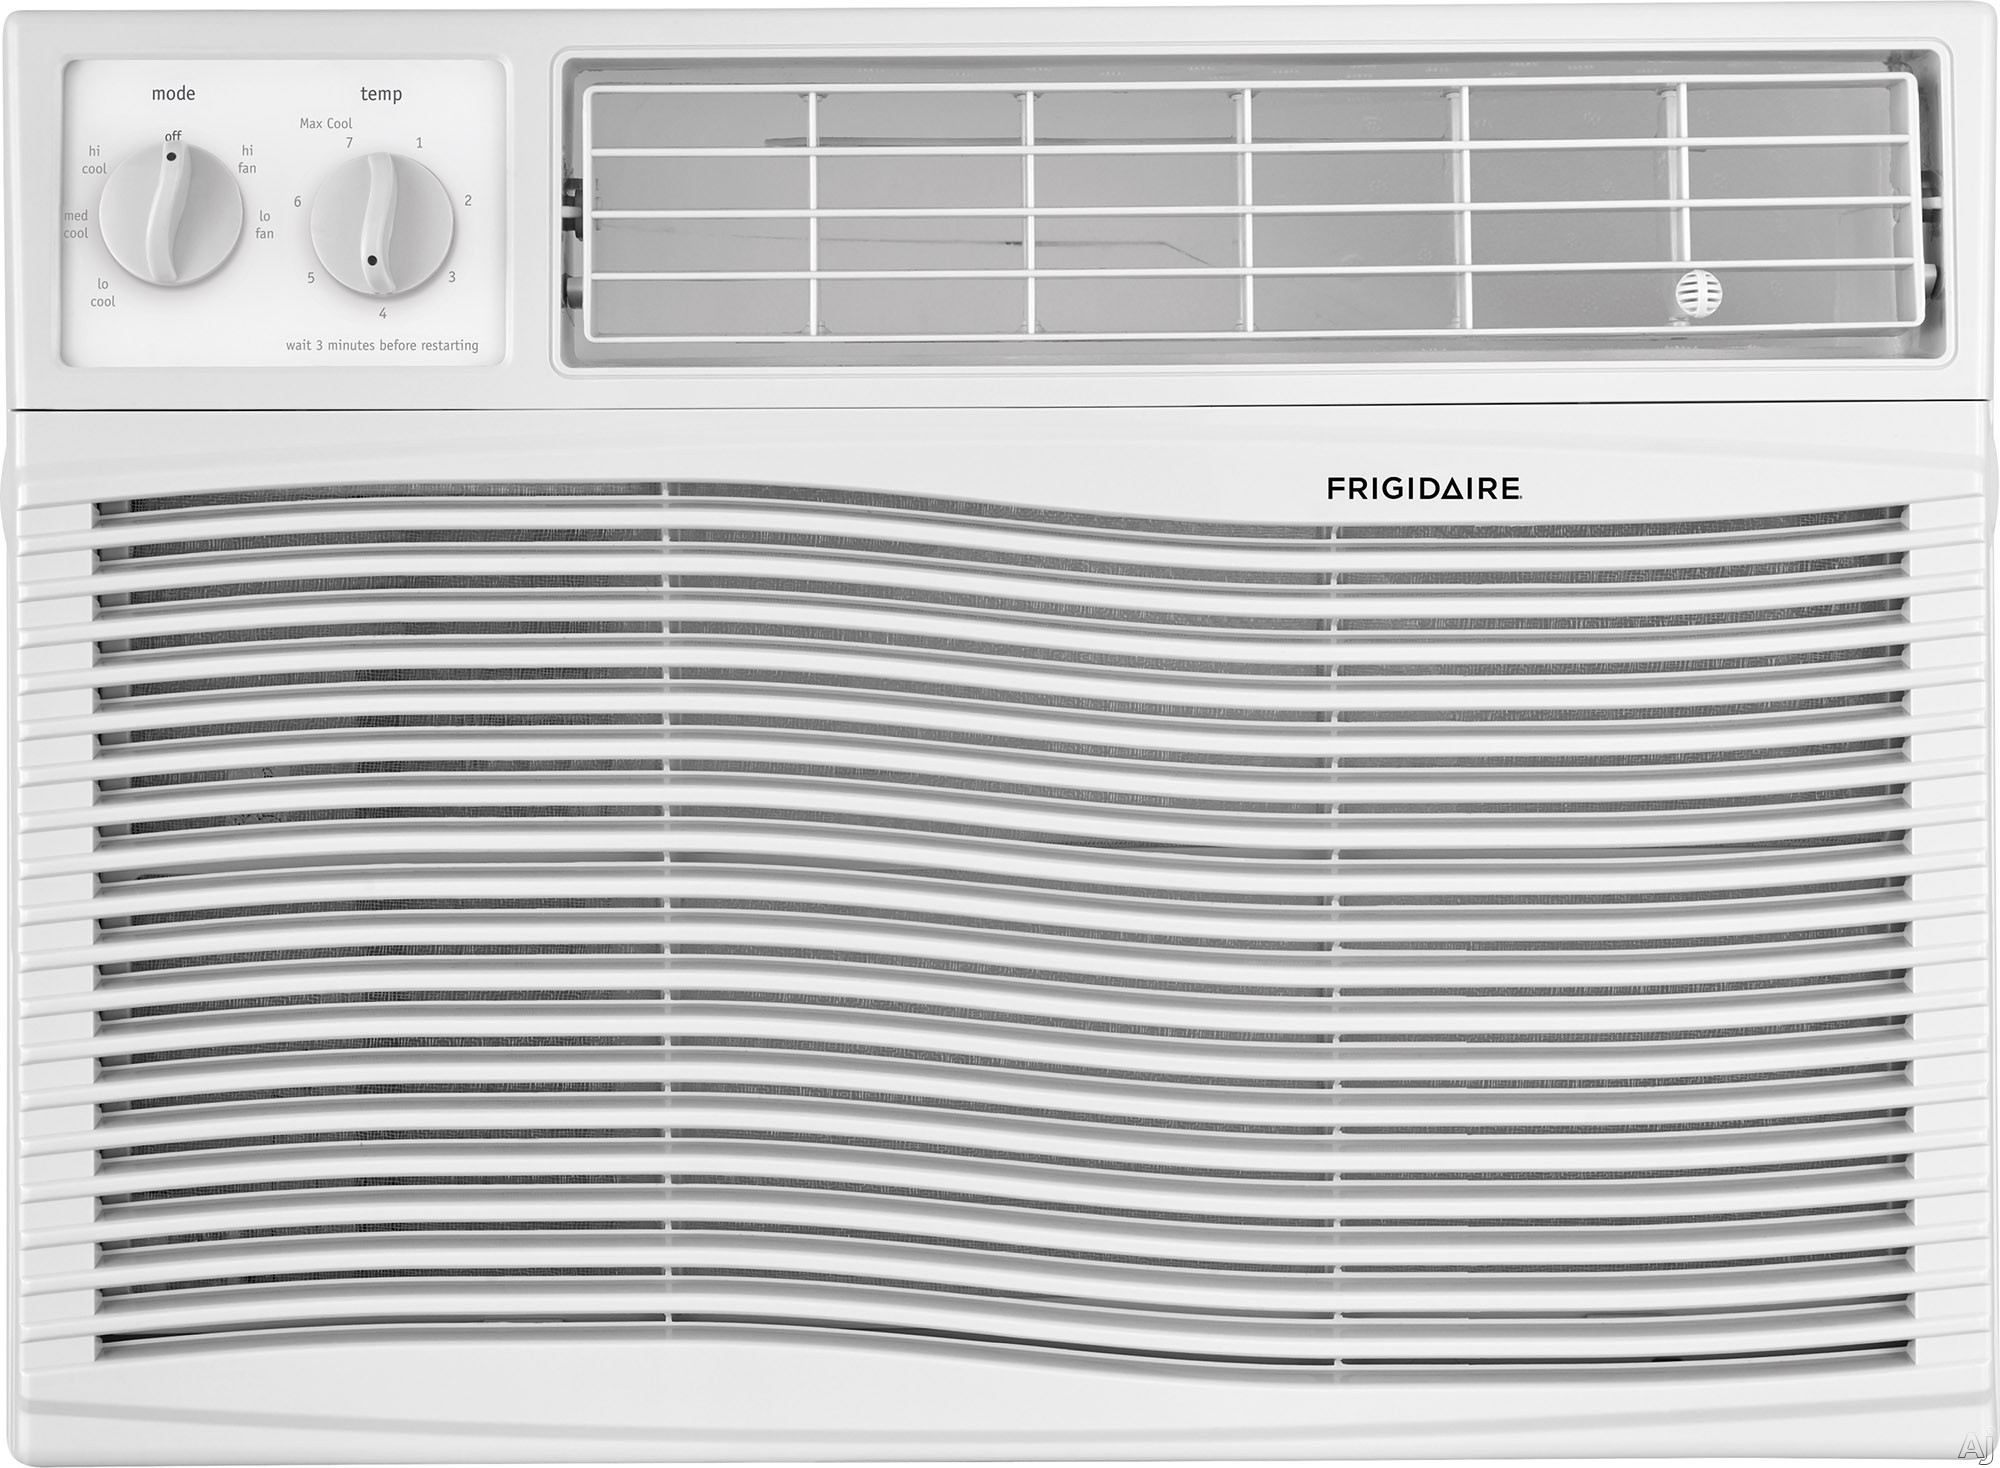 Frigidaire FFRA1011U1 10,000 BTU Room Air Conditioner with Effortless™ Temperature Control, Effortless™ Clean Filter, Effortless™ Restart and SpaceWise® Adjustable Panels